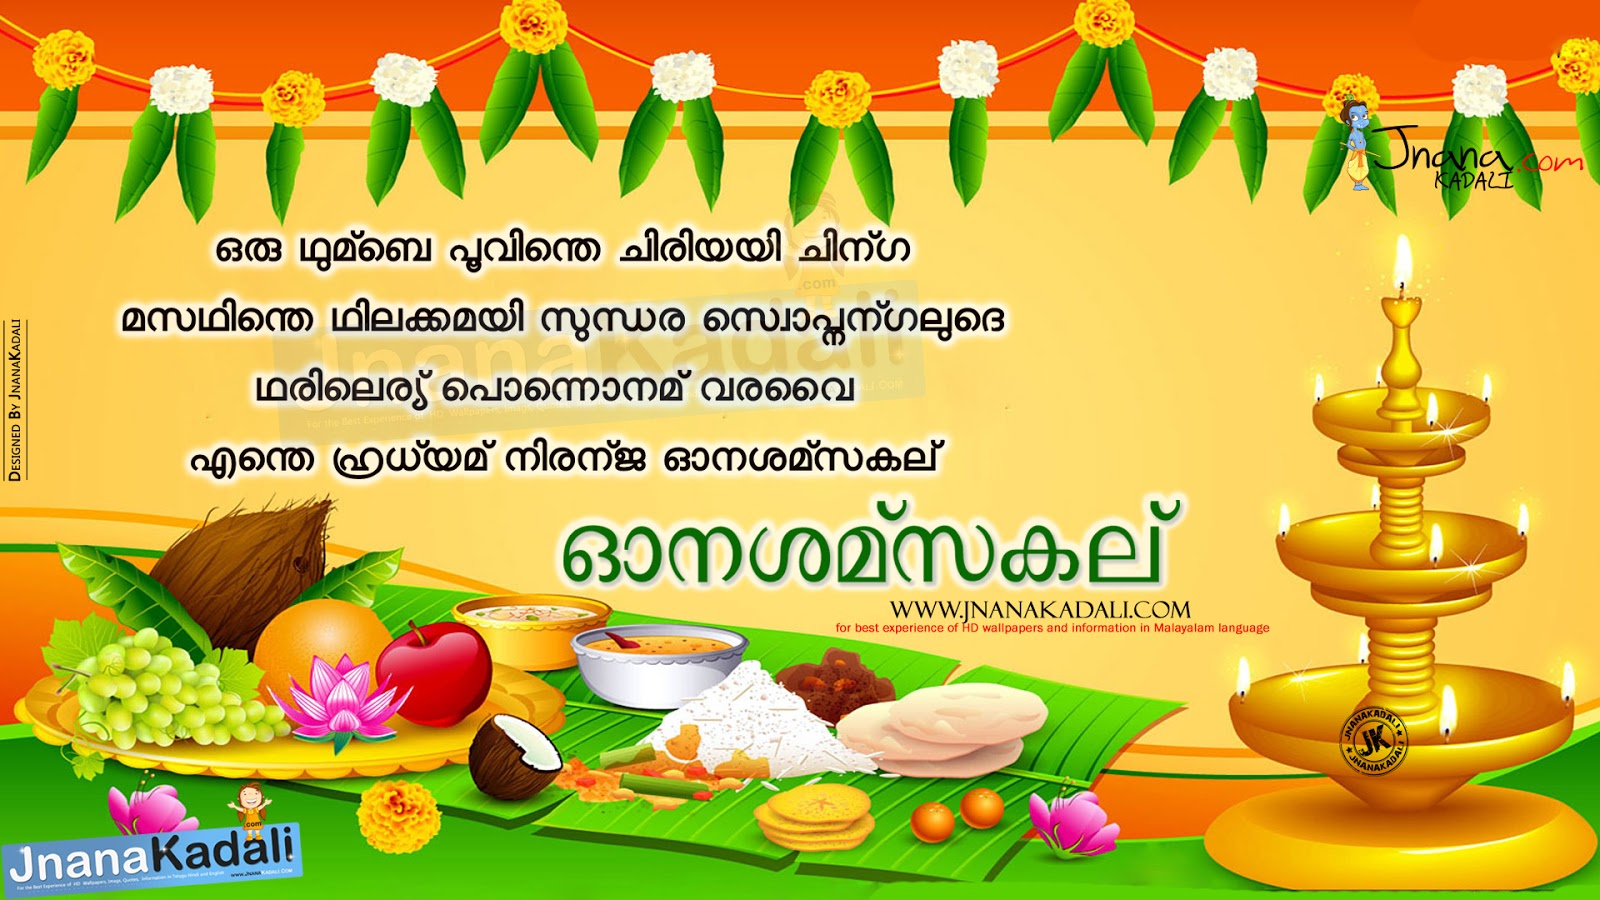 onam greetings in malayalam images image collections - greetings